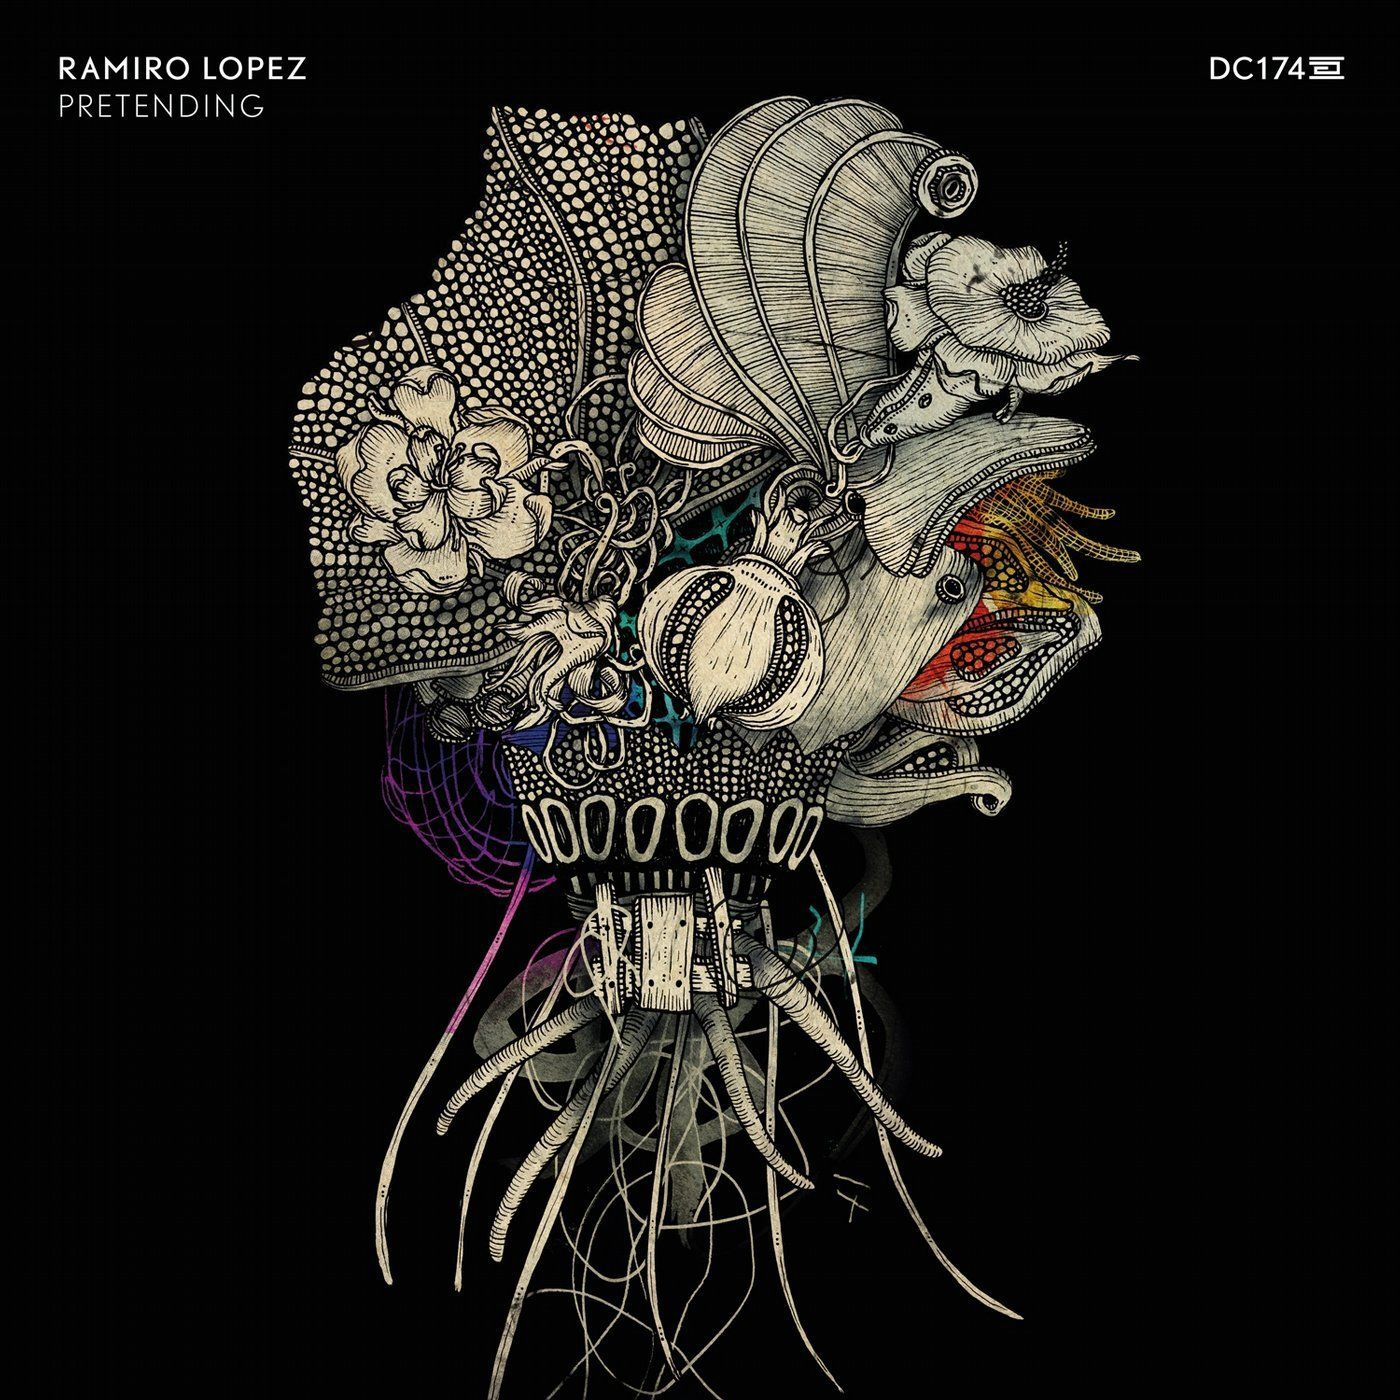 Ramiro Lopez Pretending EP MP3 Download Free 320 Kbps